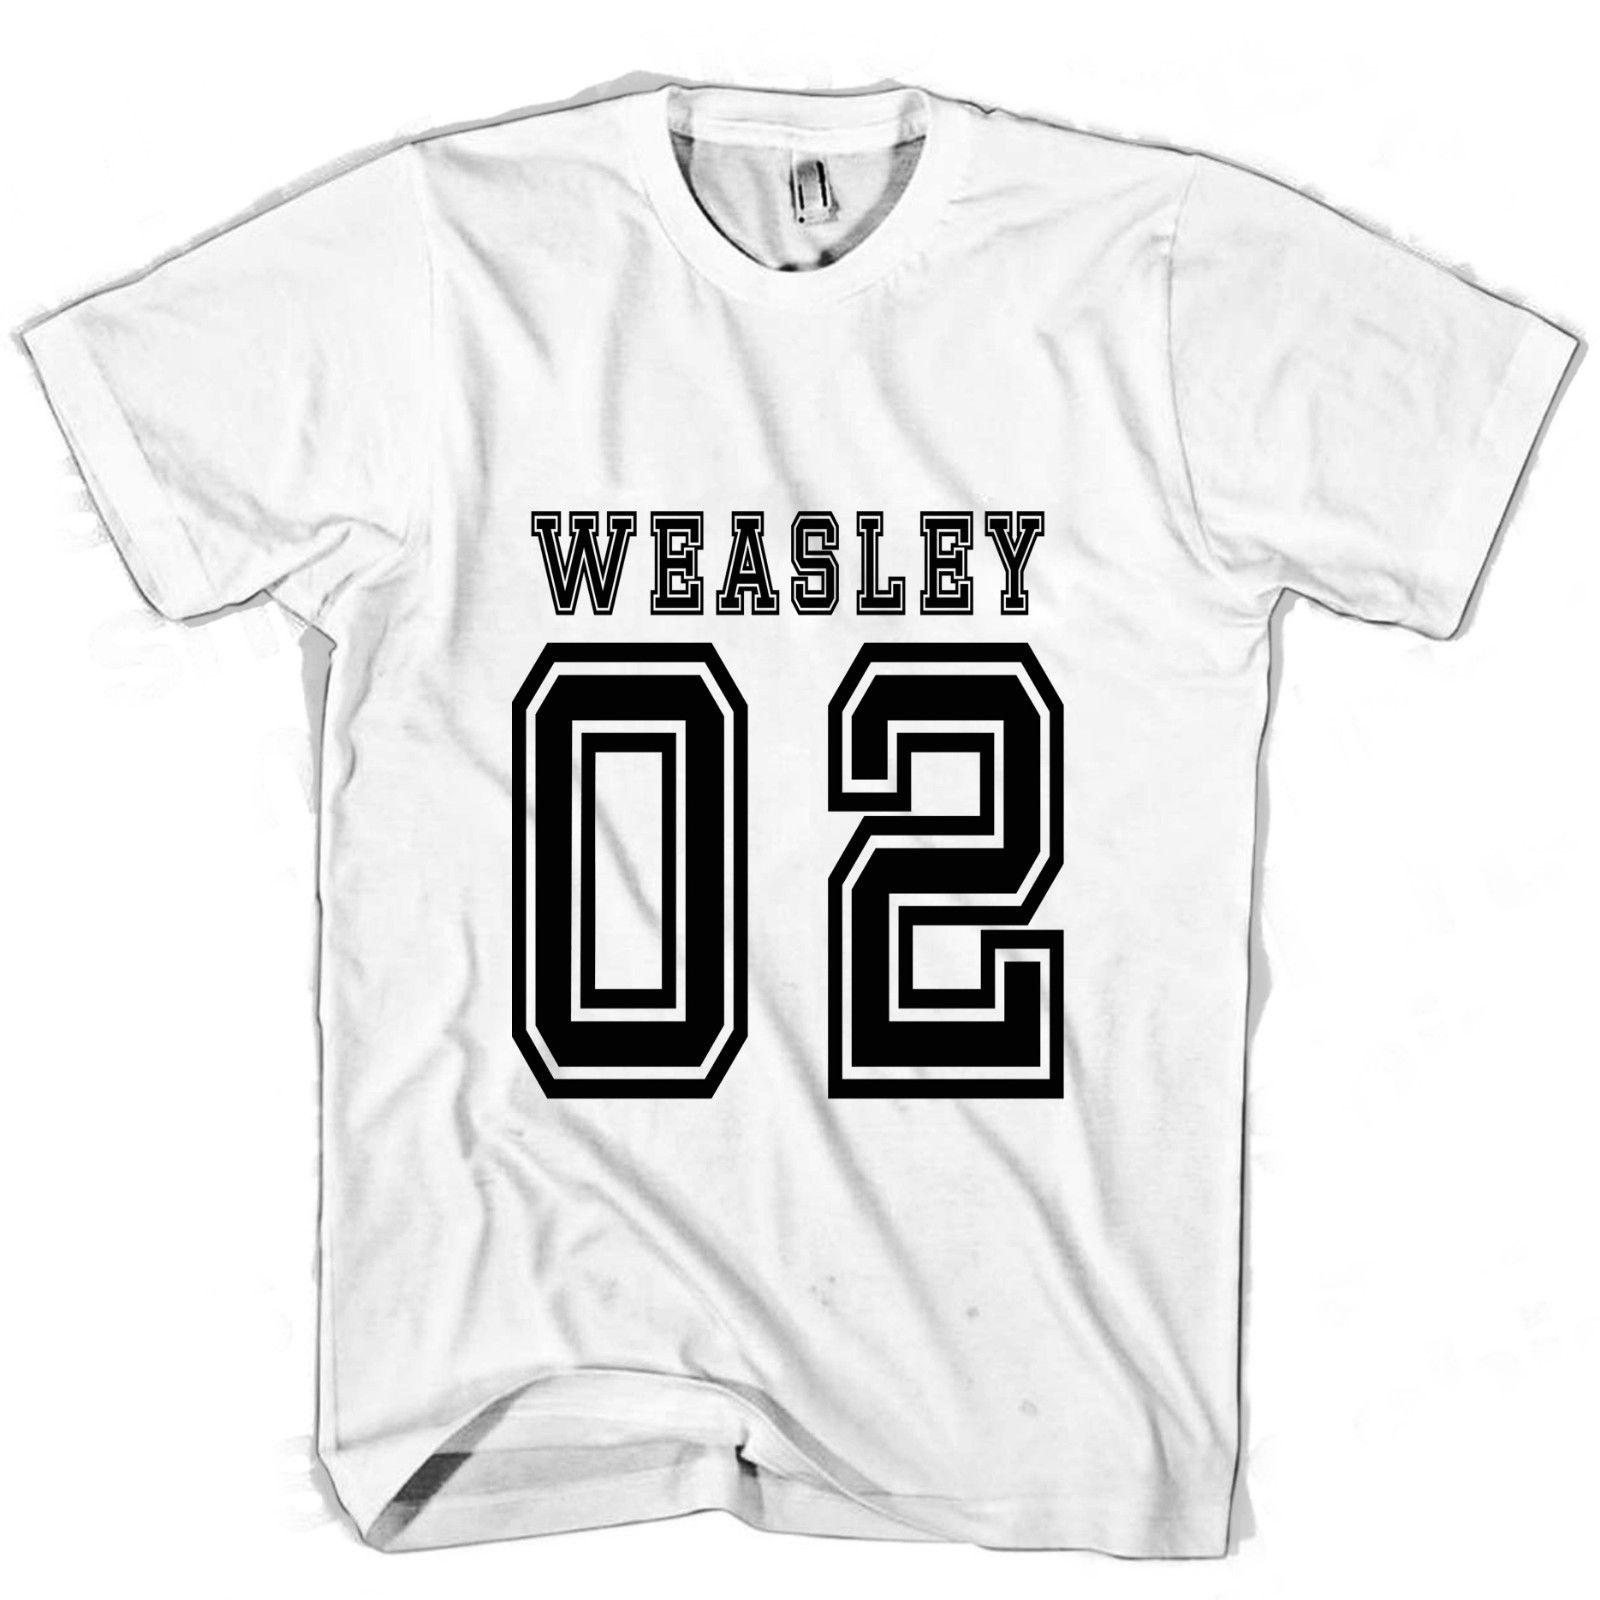 25dc1e51 Weasley 02 Harry Potter Men'S / Women'S T Shirt Funny Unisex Tshirt Top T  Shirt Shirts Shirts And Tshirts From Tshirtbakers, $12.96| DHgate.Com